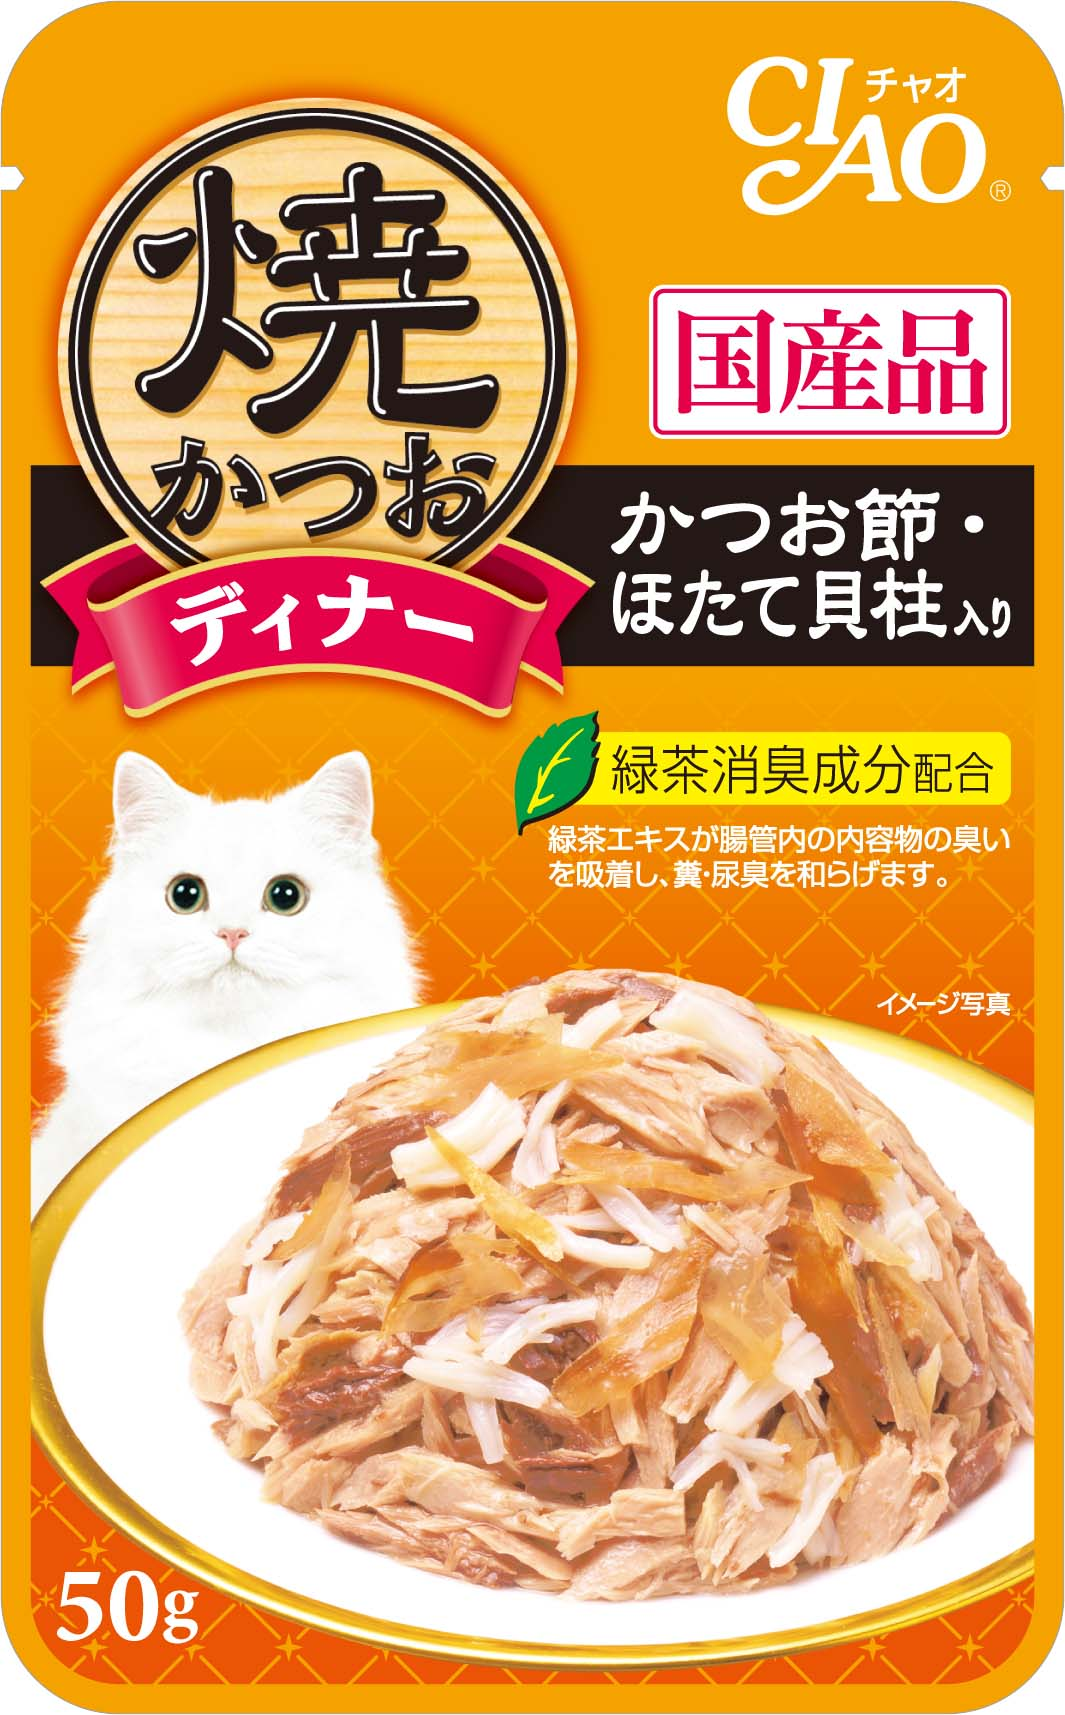 CIP231 Grilled Tuna Flakes with Scallop and _ Sliced Bonito in Jelly.jpg